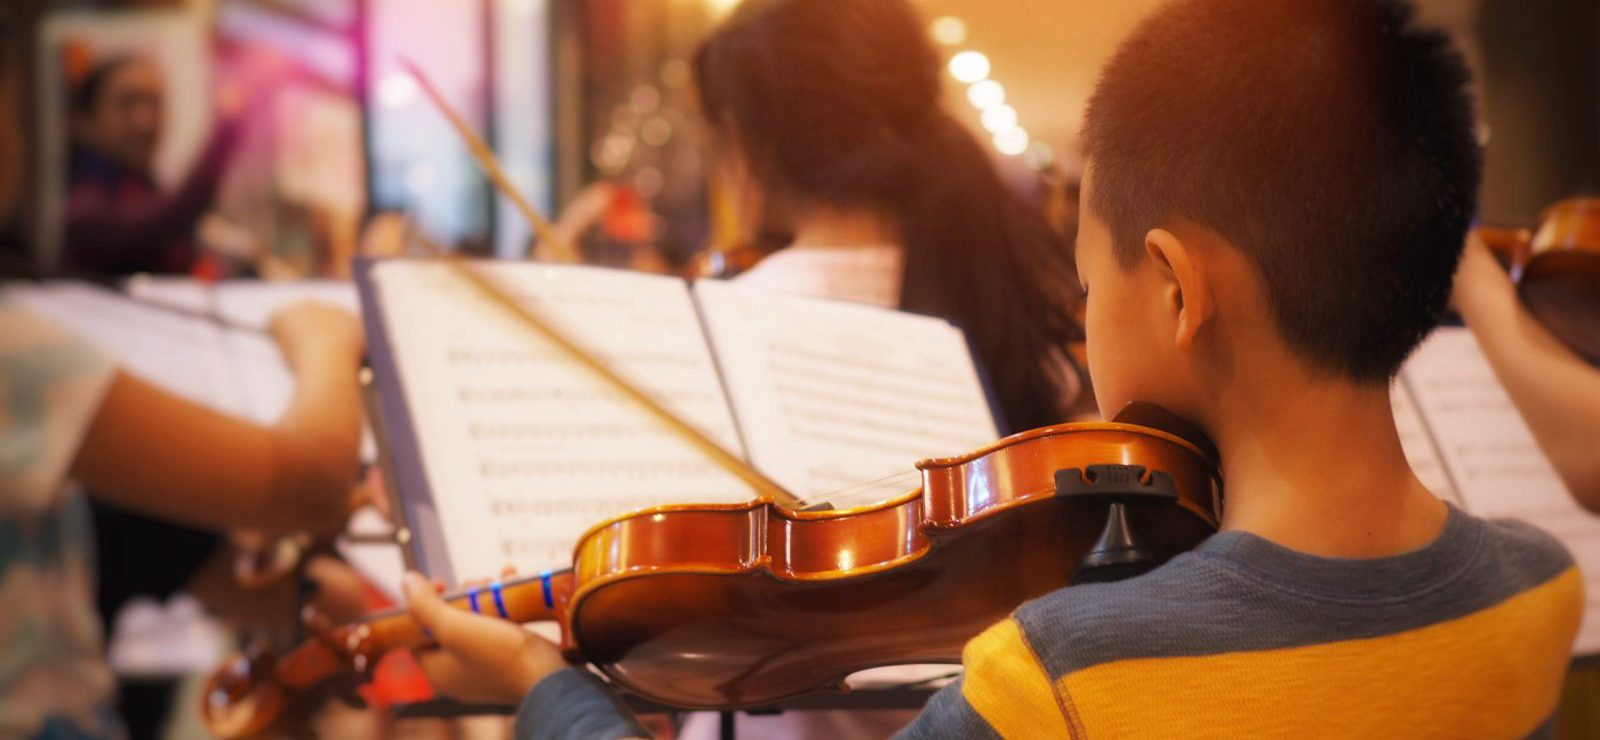 Young violinist practicing with orchestra band.